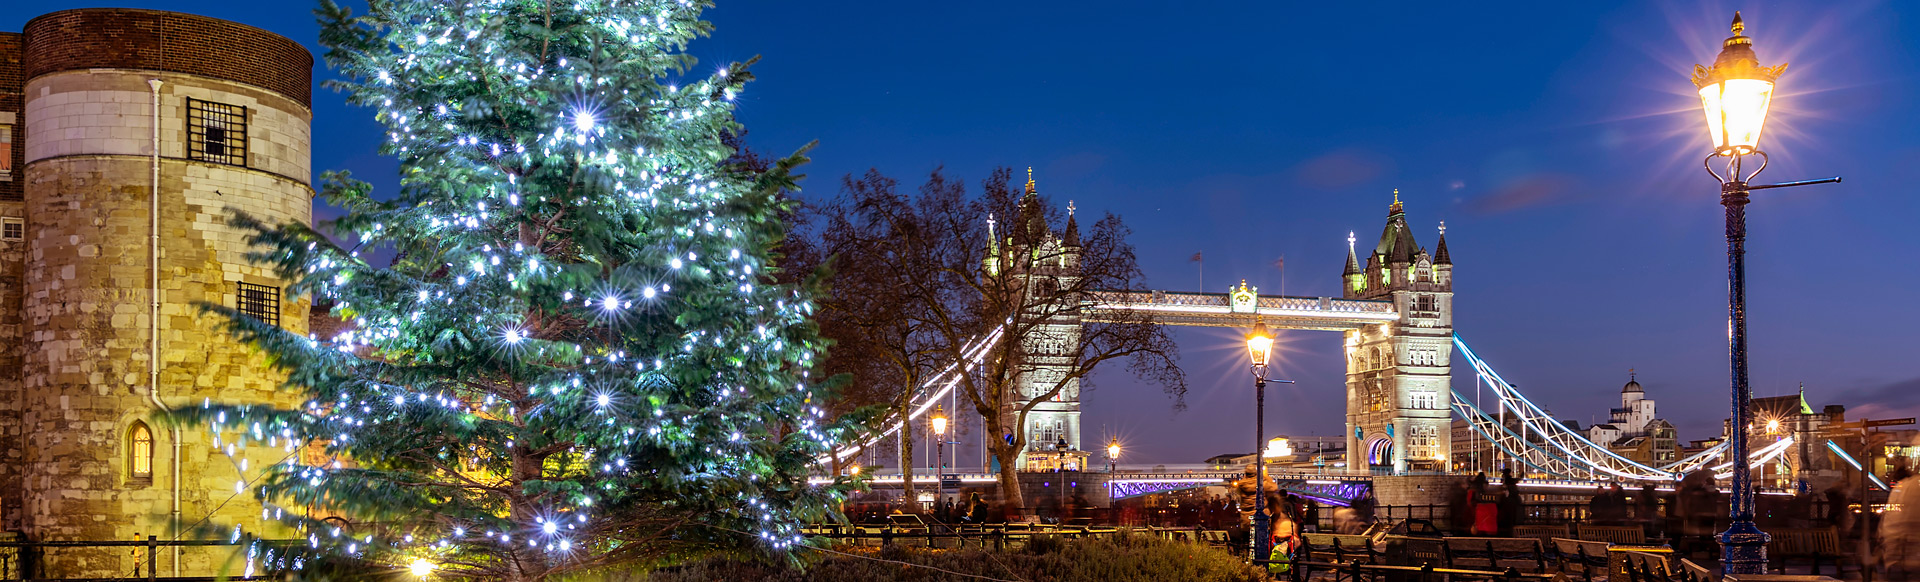 Christmas Activities Park City 2020 Christmas in London 2020   What's On   visitlondon.com